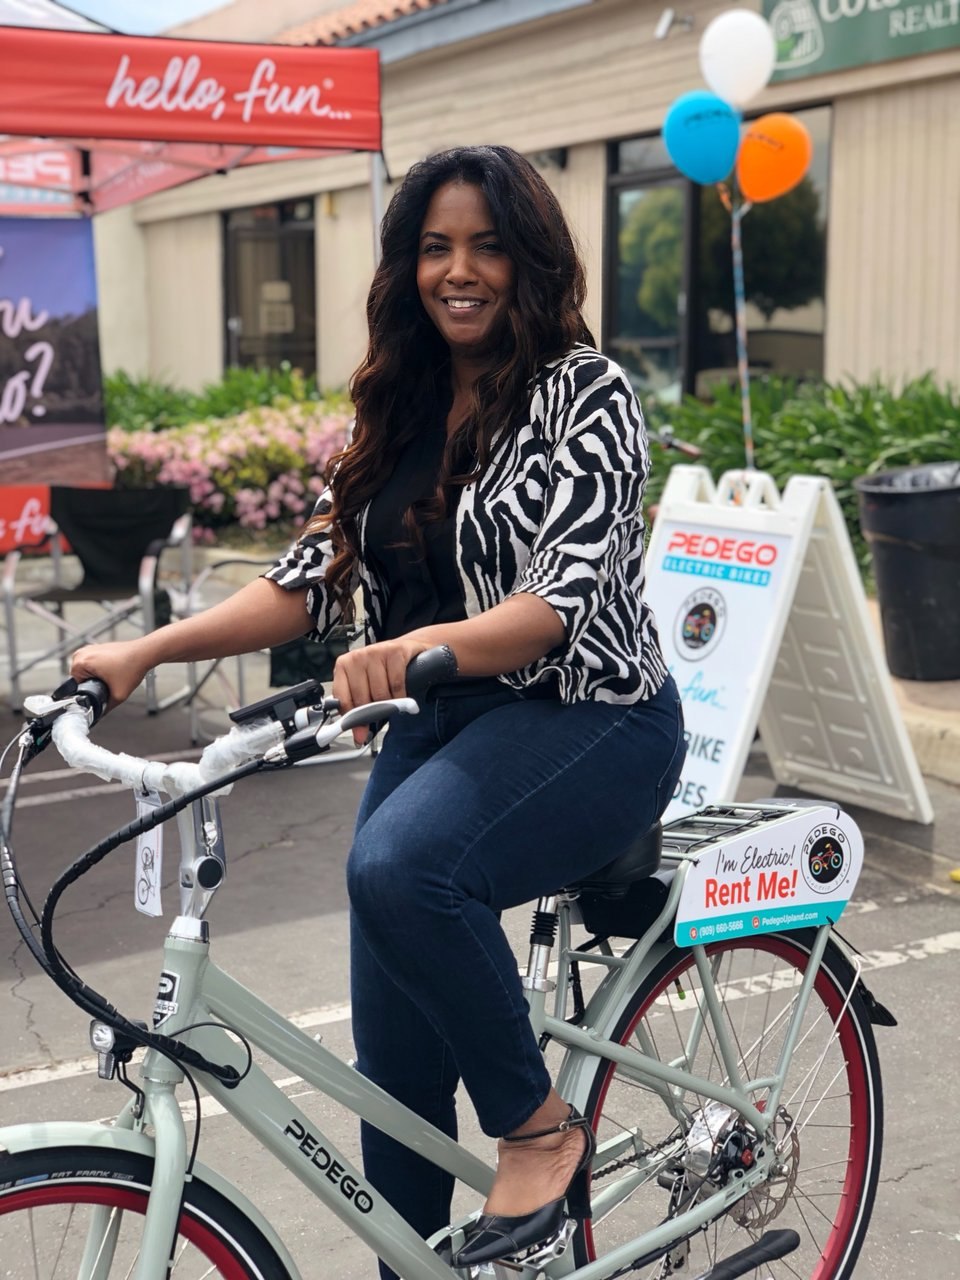 Pedego Electric Bikes Upland 2020 All You Need To Know Before You Go With Photos Tripadvisor